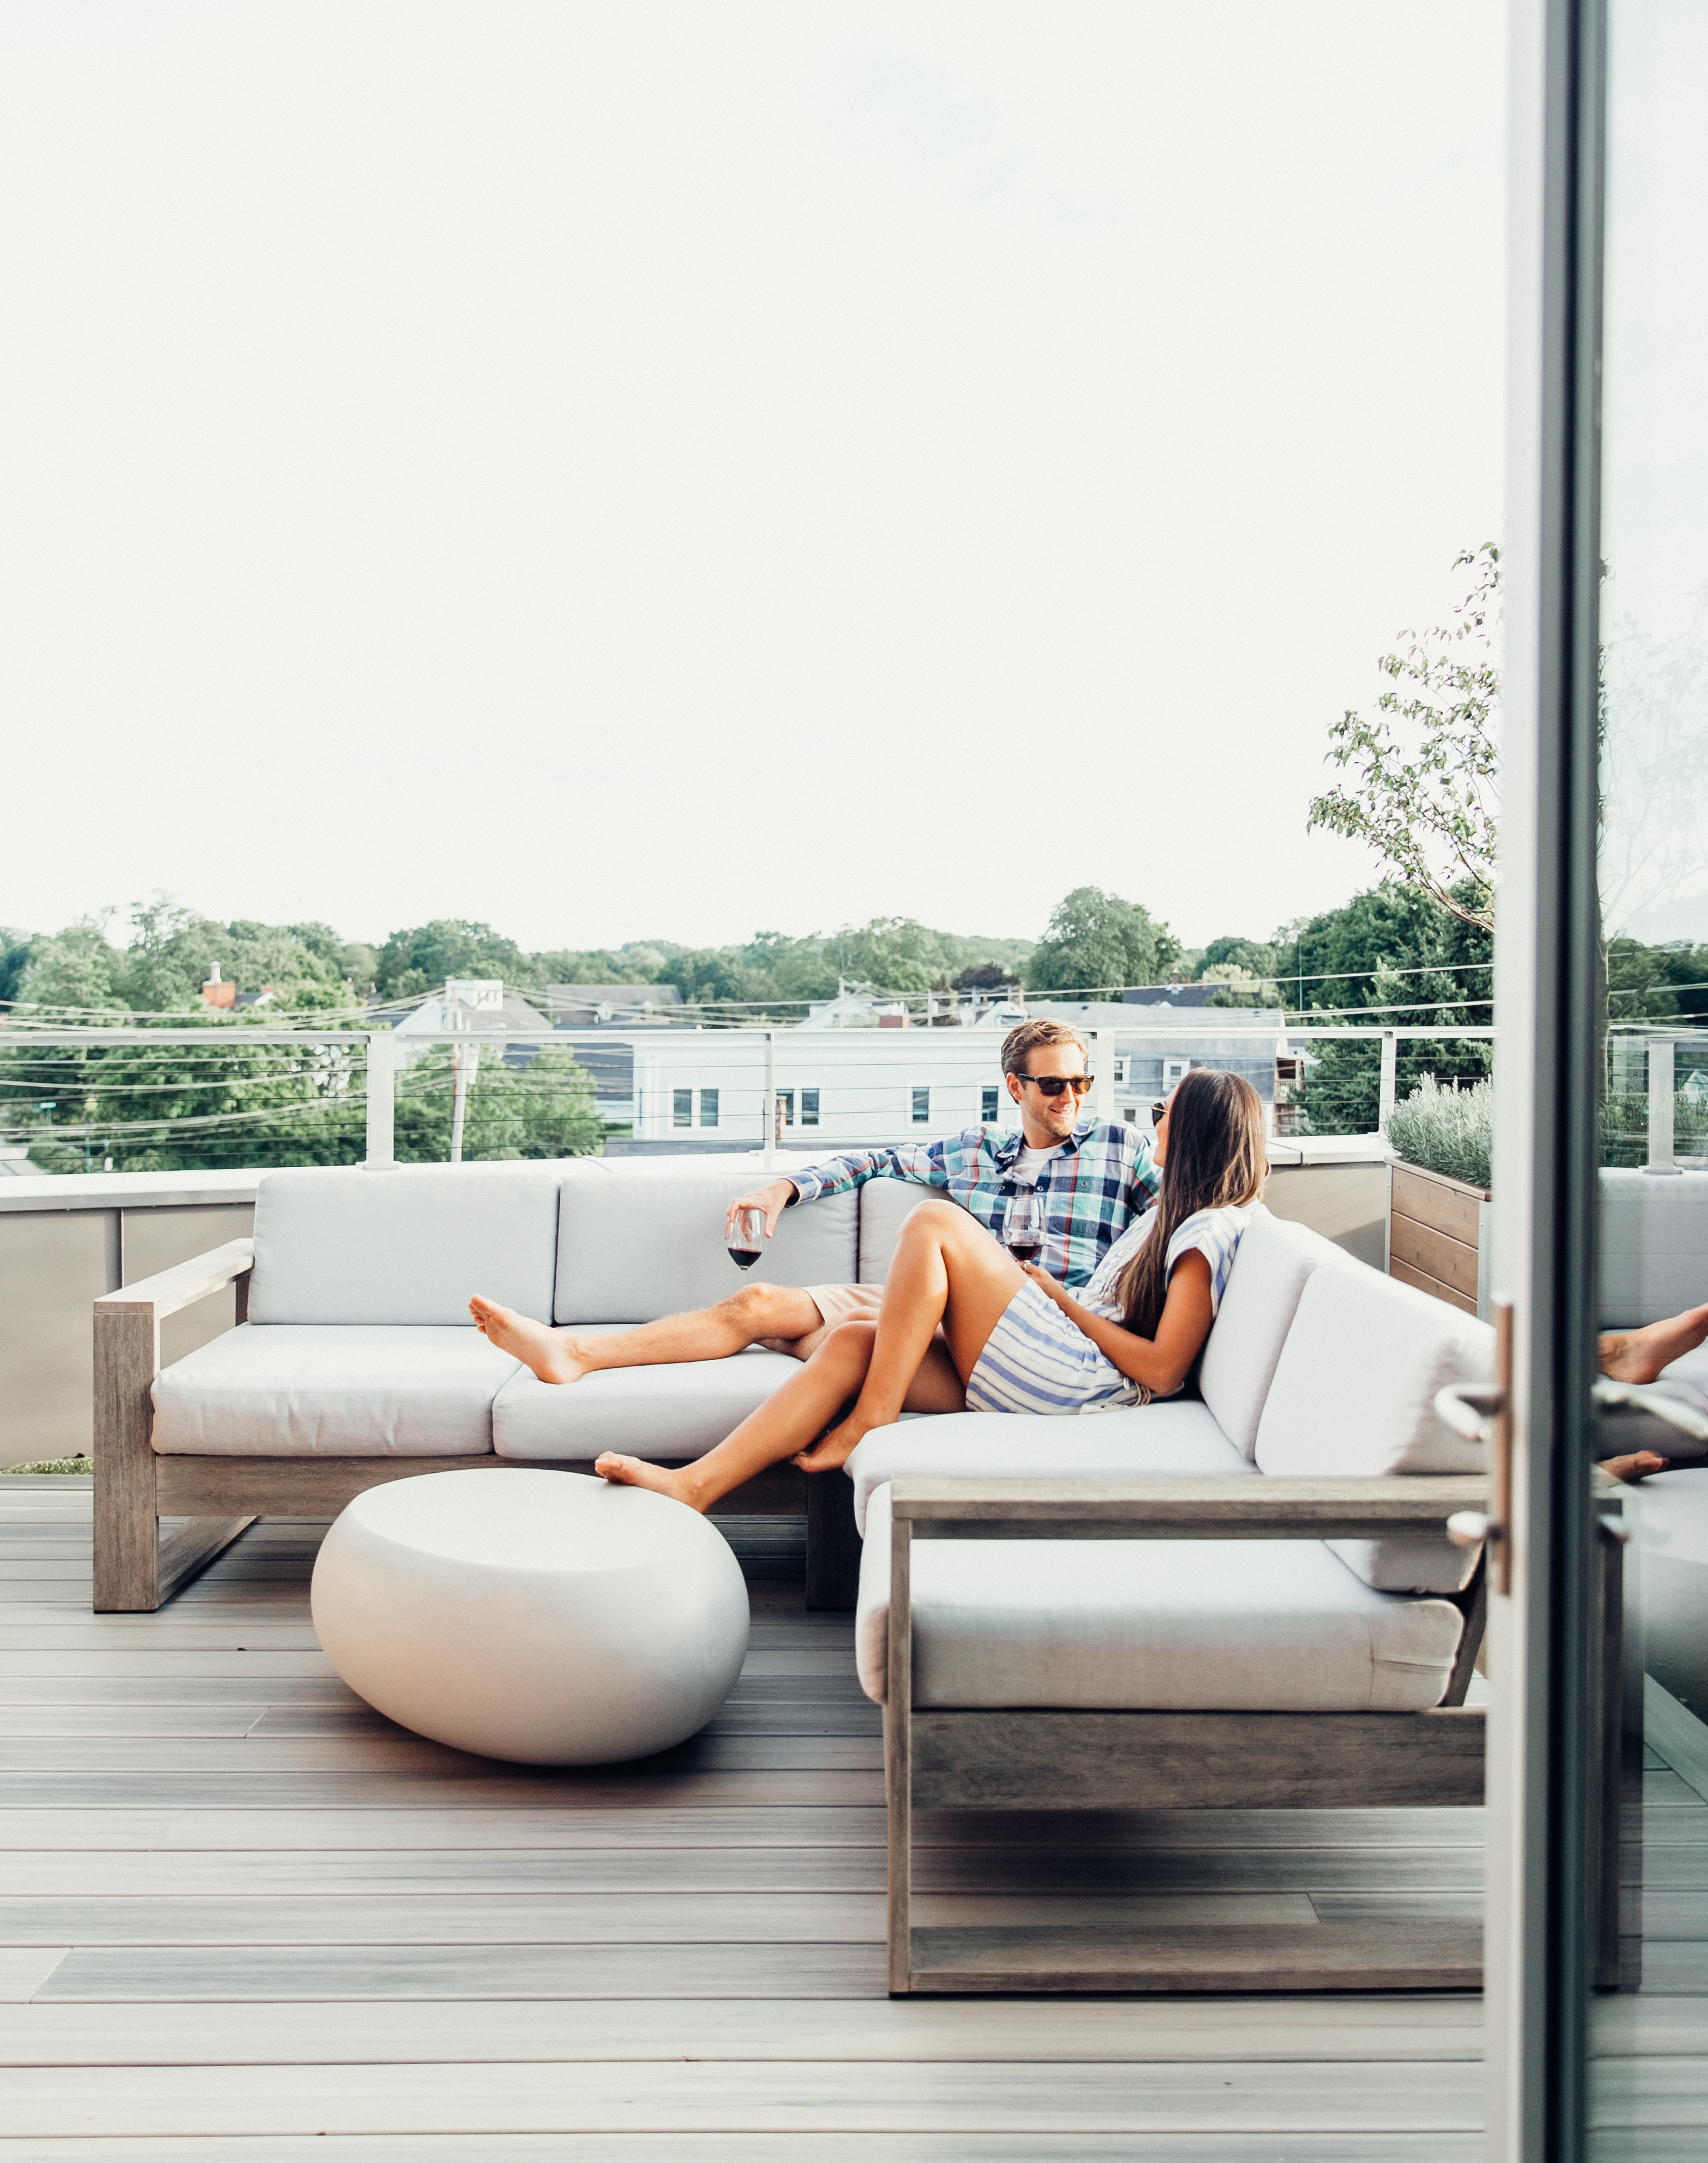 250 Main Hotel | Best Places to Stay in Maine | Best Hotels on the Coast of Maine | Where to stay in the coastal towns of Maine | Travel Guide to the coast of Maine | How to Experience Maine | Rockland, Maine | Best of Maine via Travel Blogger @elanaloo + elanaloo.com